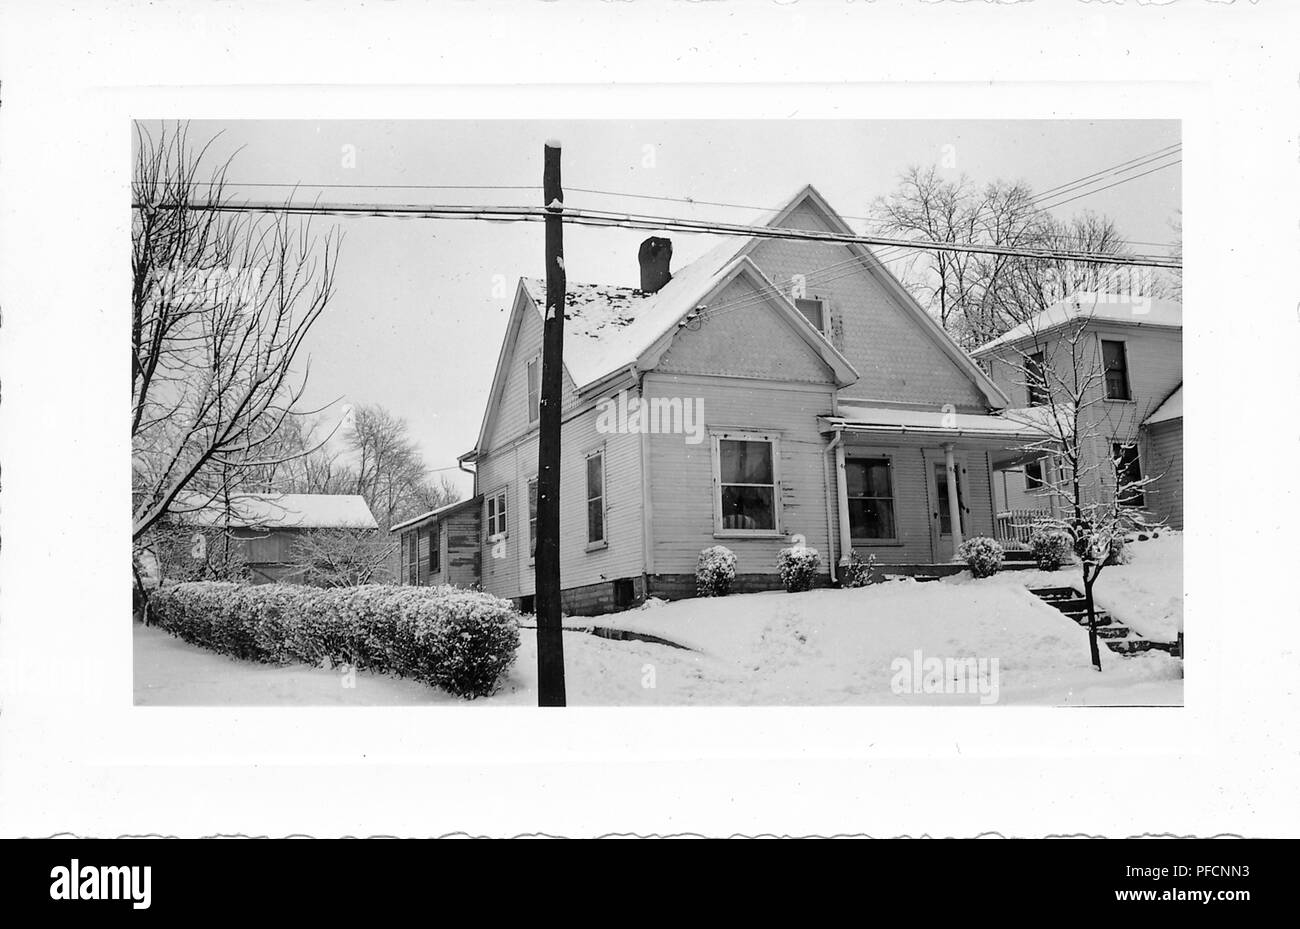 Black and white photograph, showing a small, light-colored house, with siding, a covered front porch, and snow visible on the roof, front yard, hedges, leafless trees, and electrical posts, likely photographed in Ohio in the decade following World War II, 1950. () - Stock Image